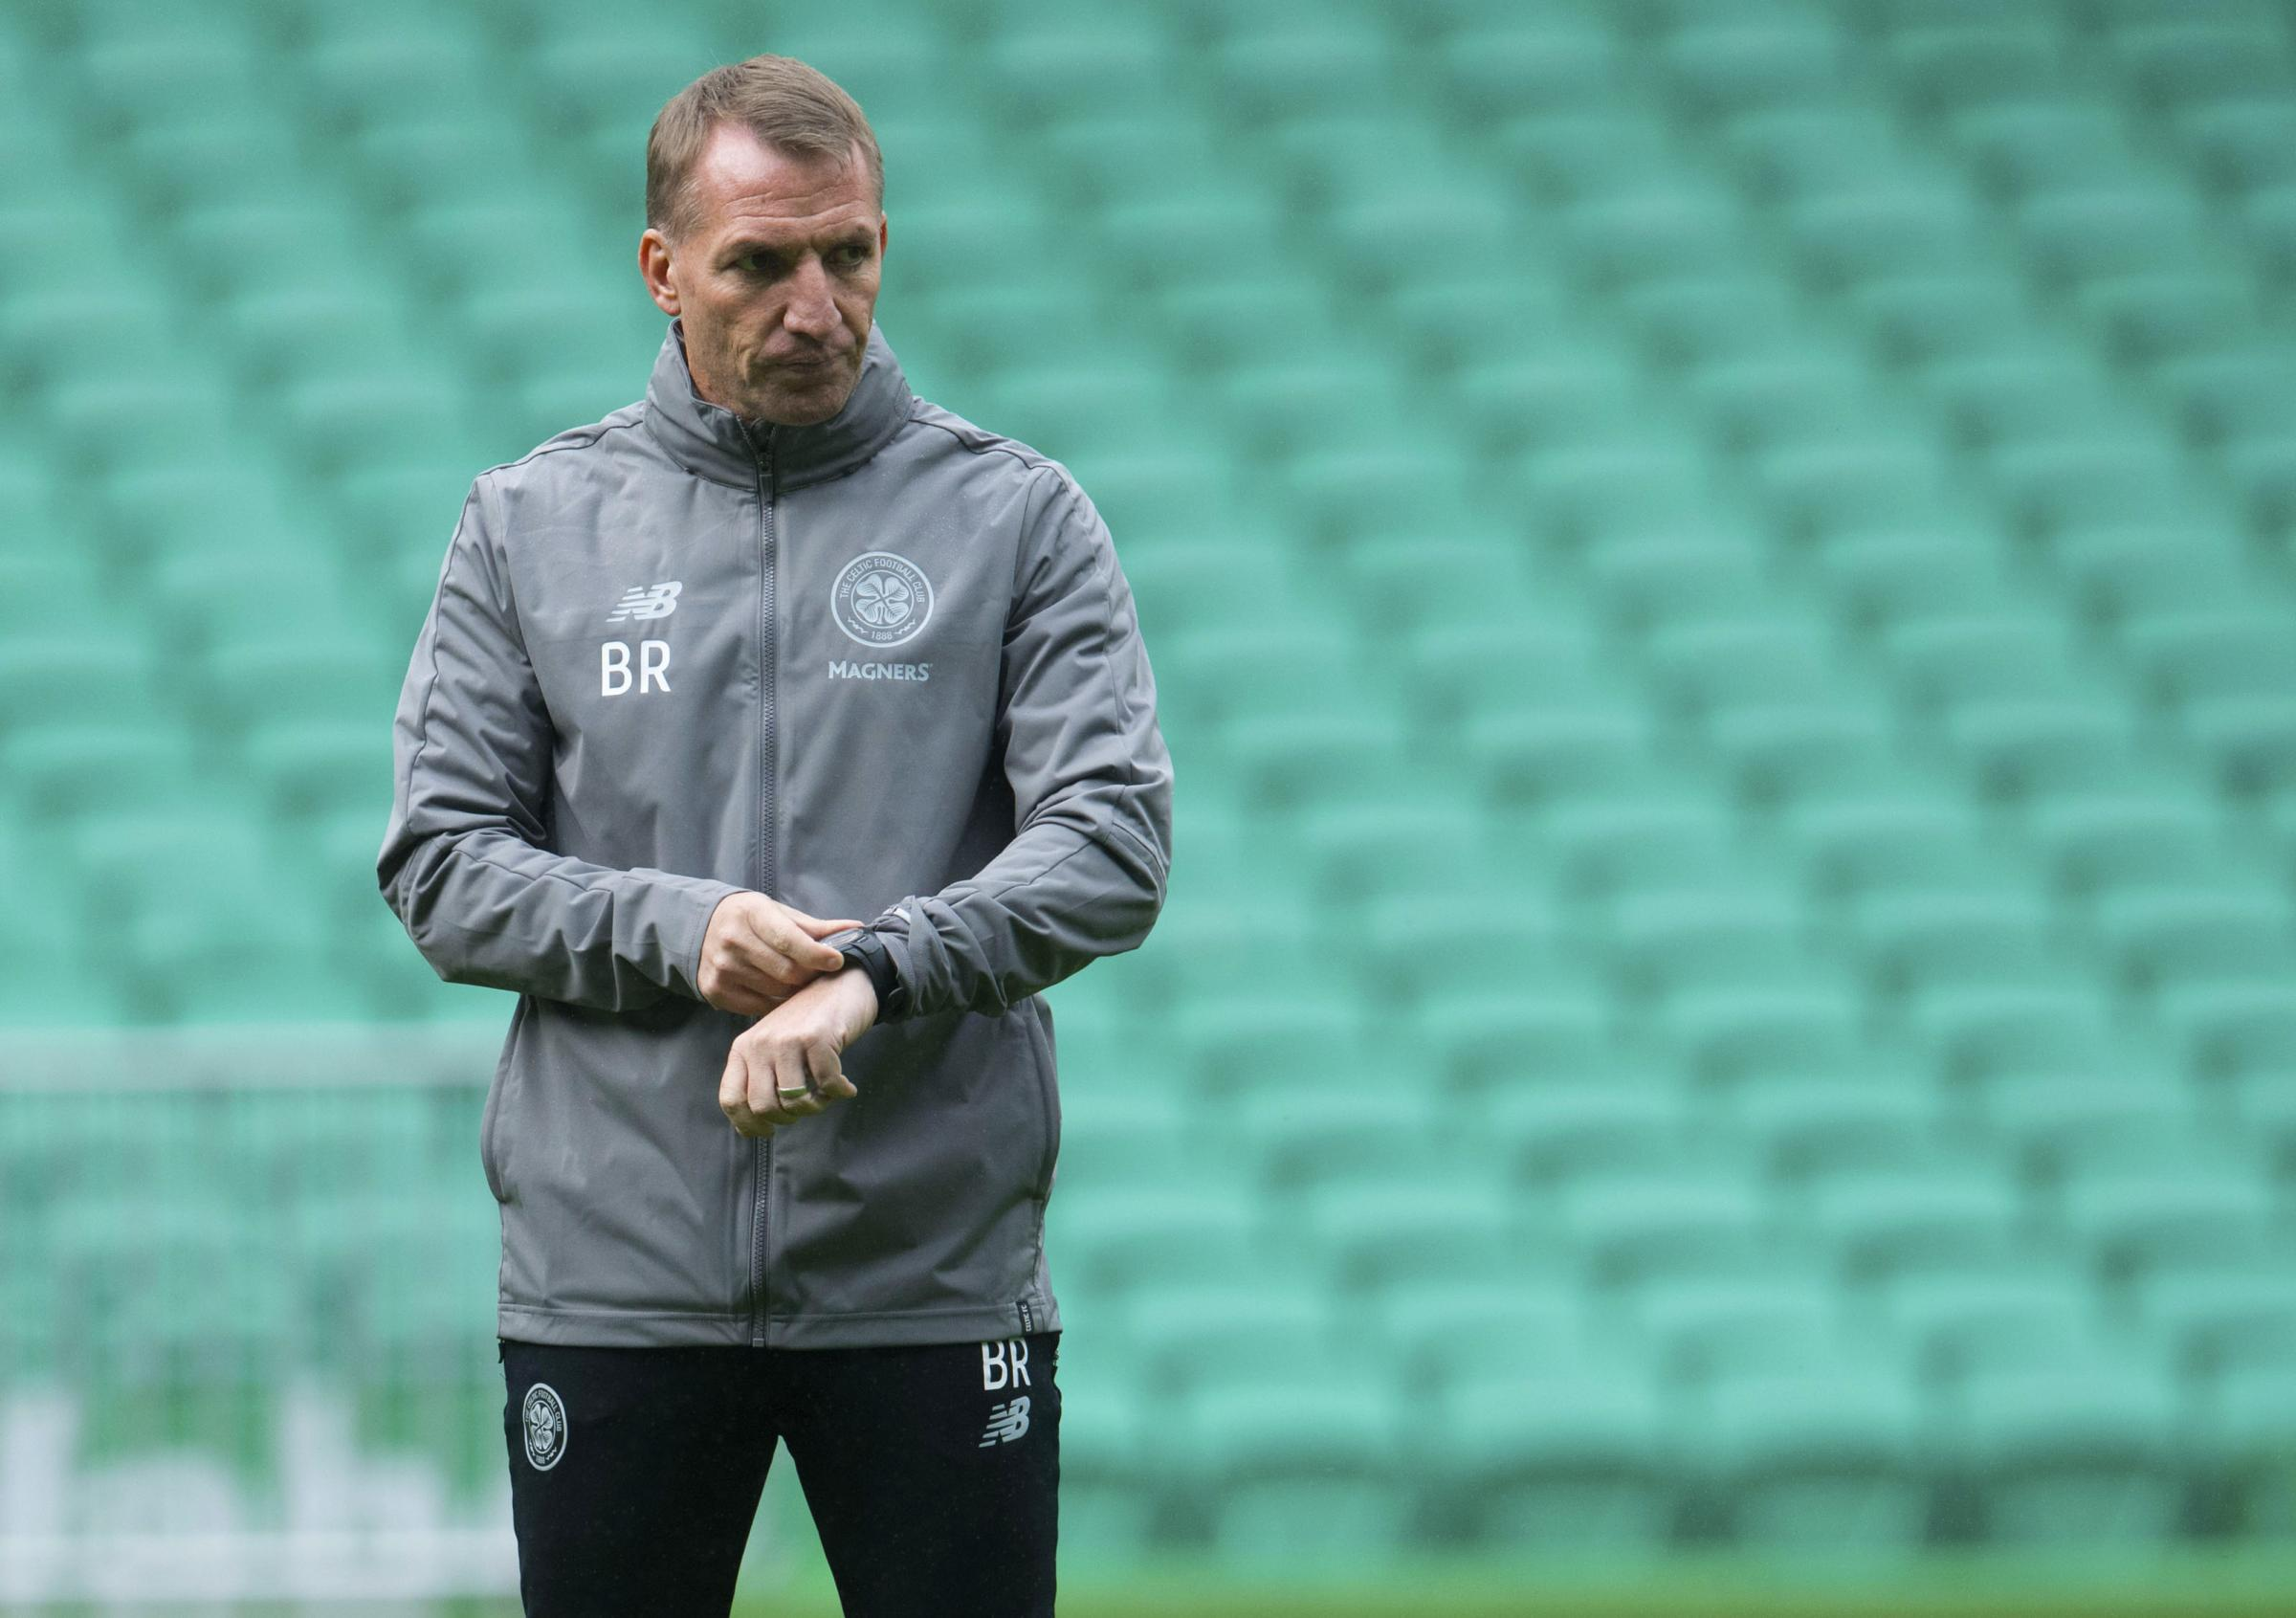 03/10/18. CELTIC TRAINING. CELTIC PARK - GLASGOW. Celtic manager Brendan Rodgers.